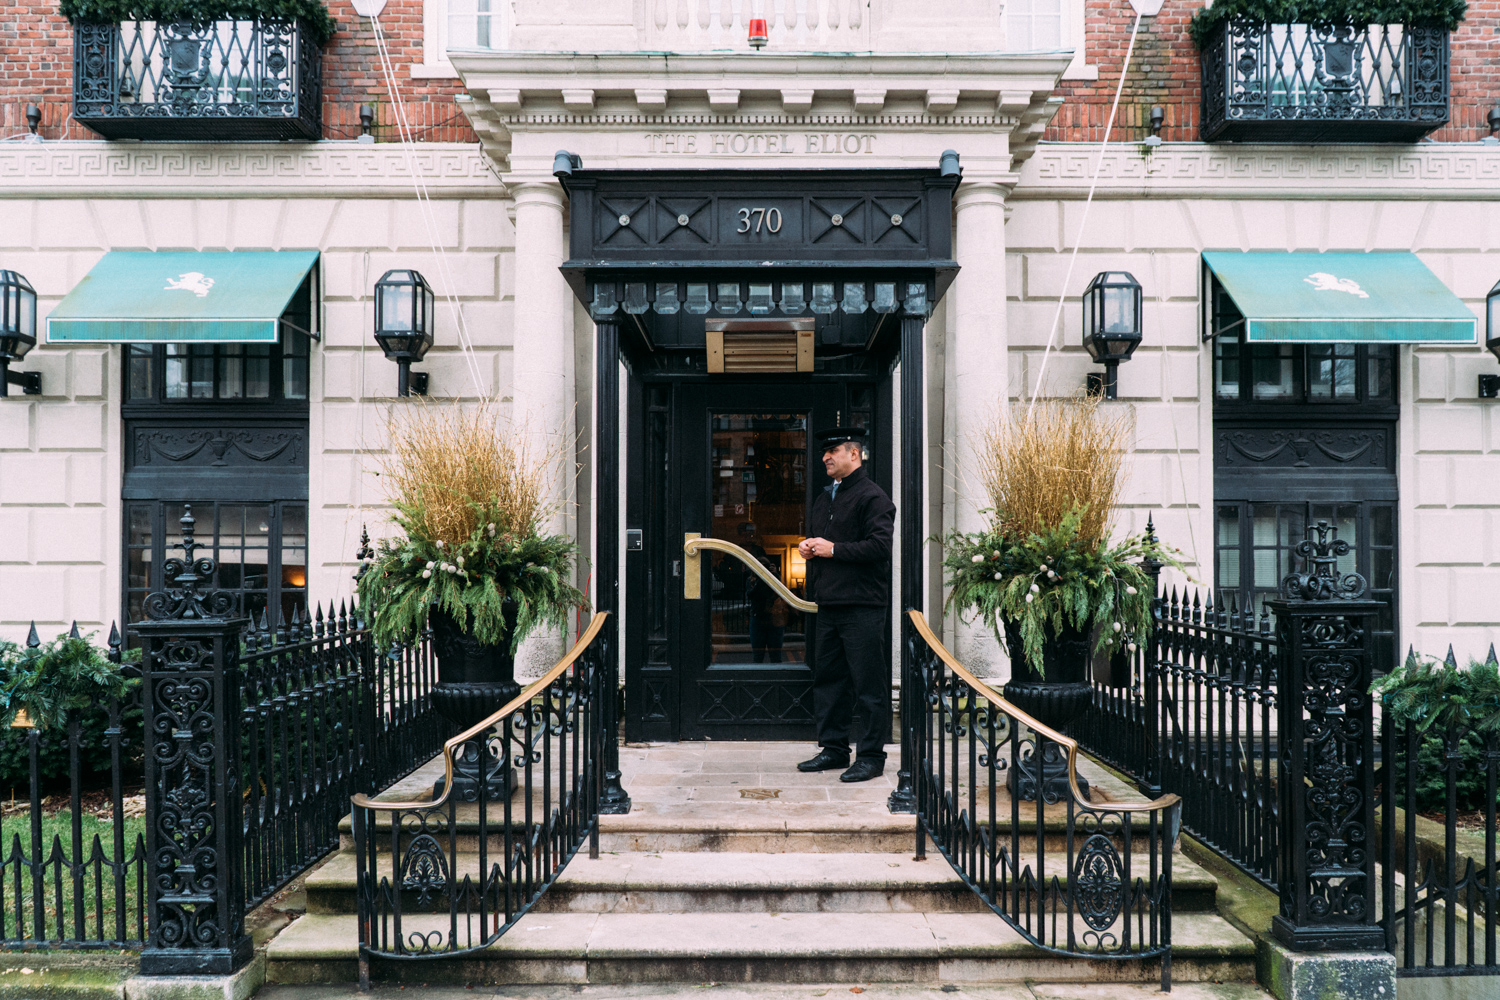 Where to stay: The Eliot Hotel in Boston, MA